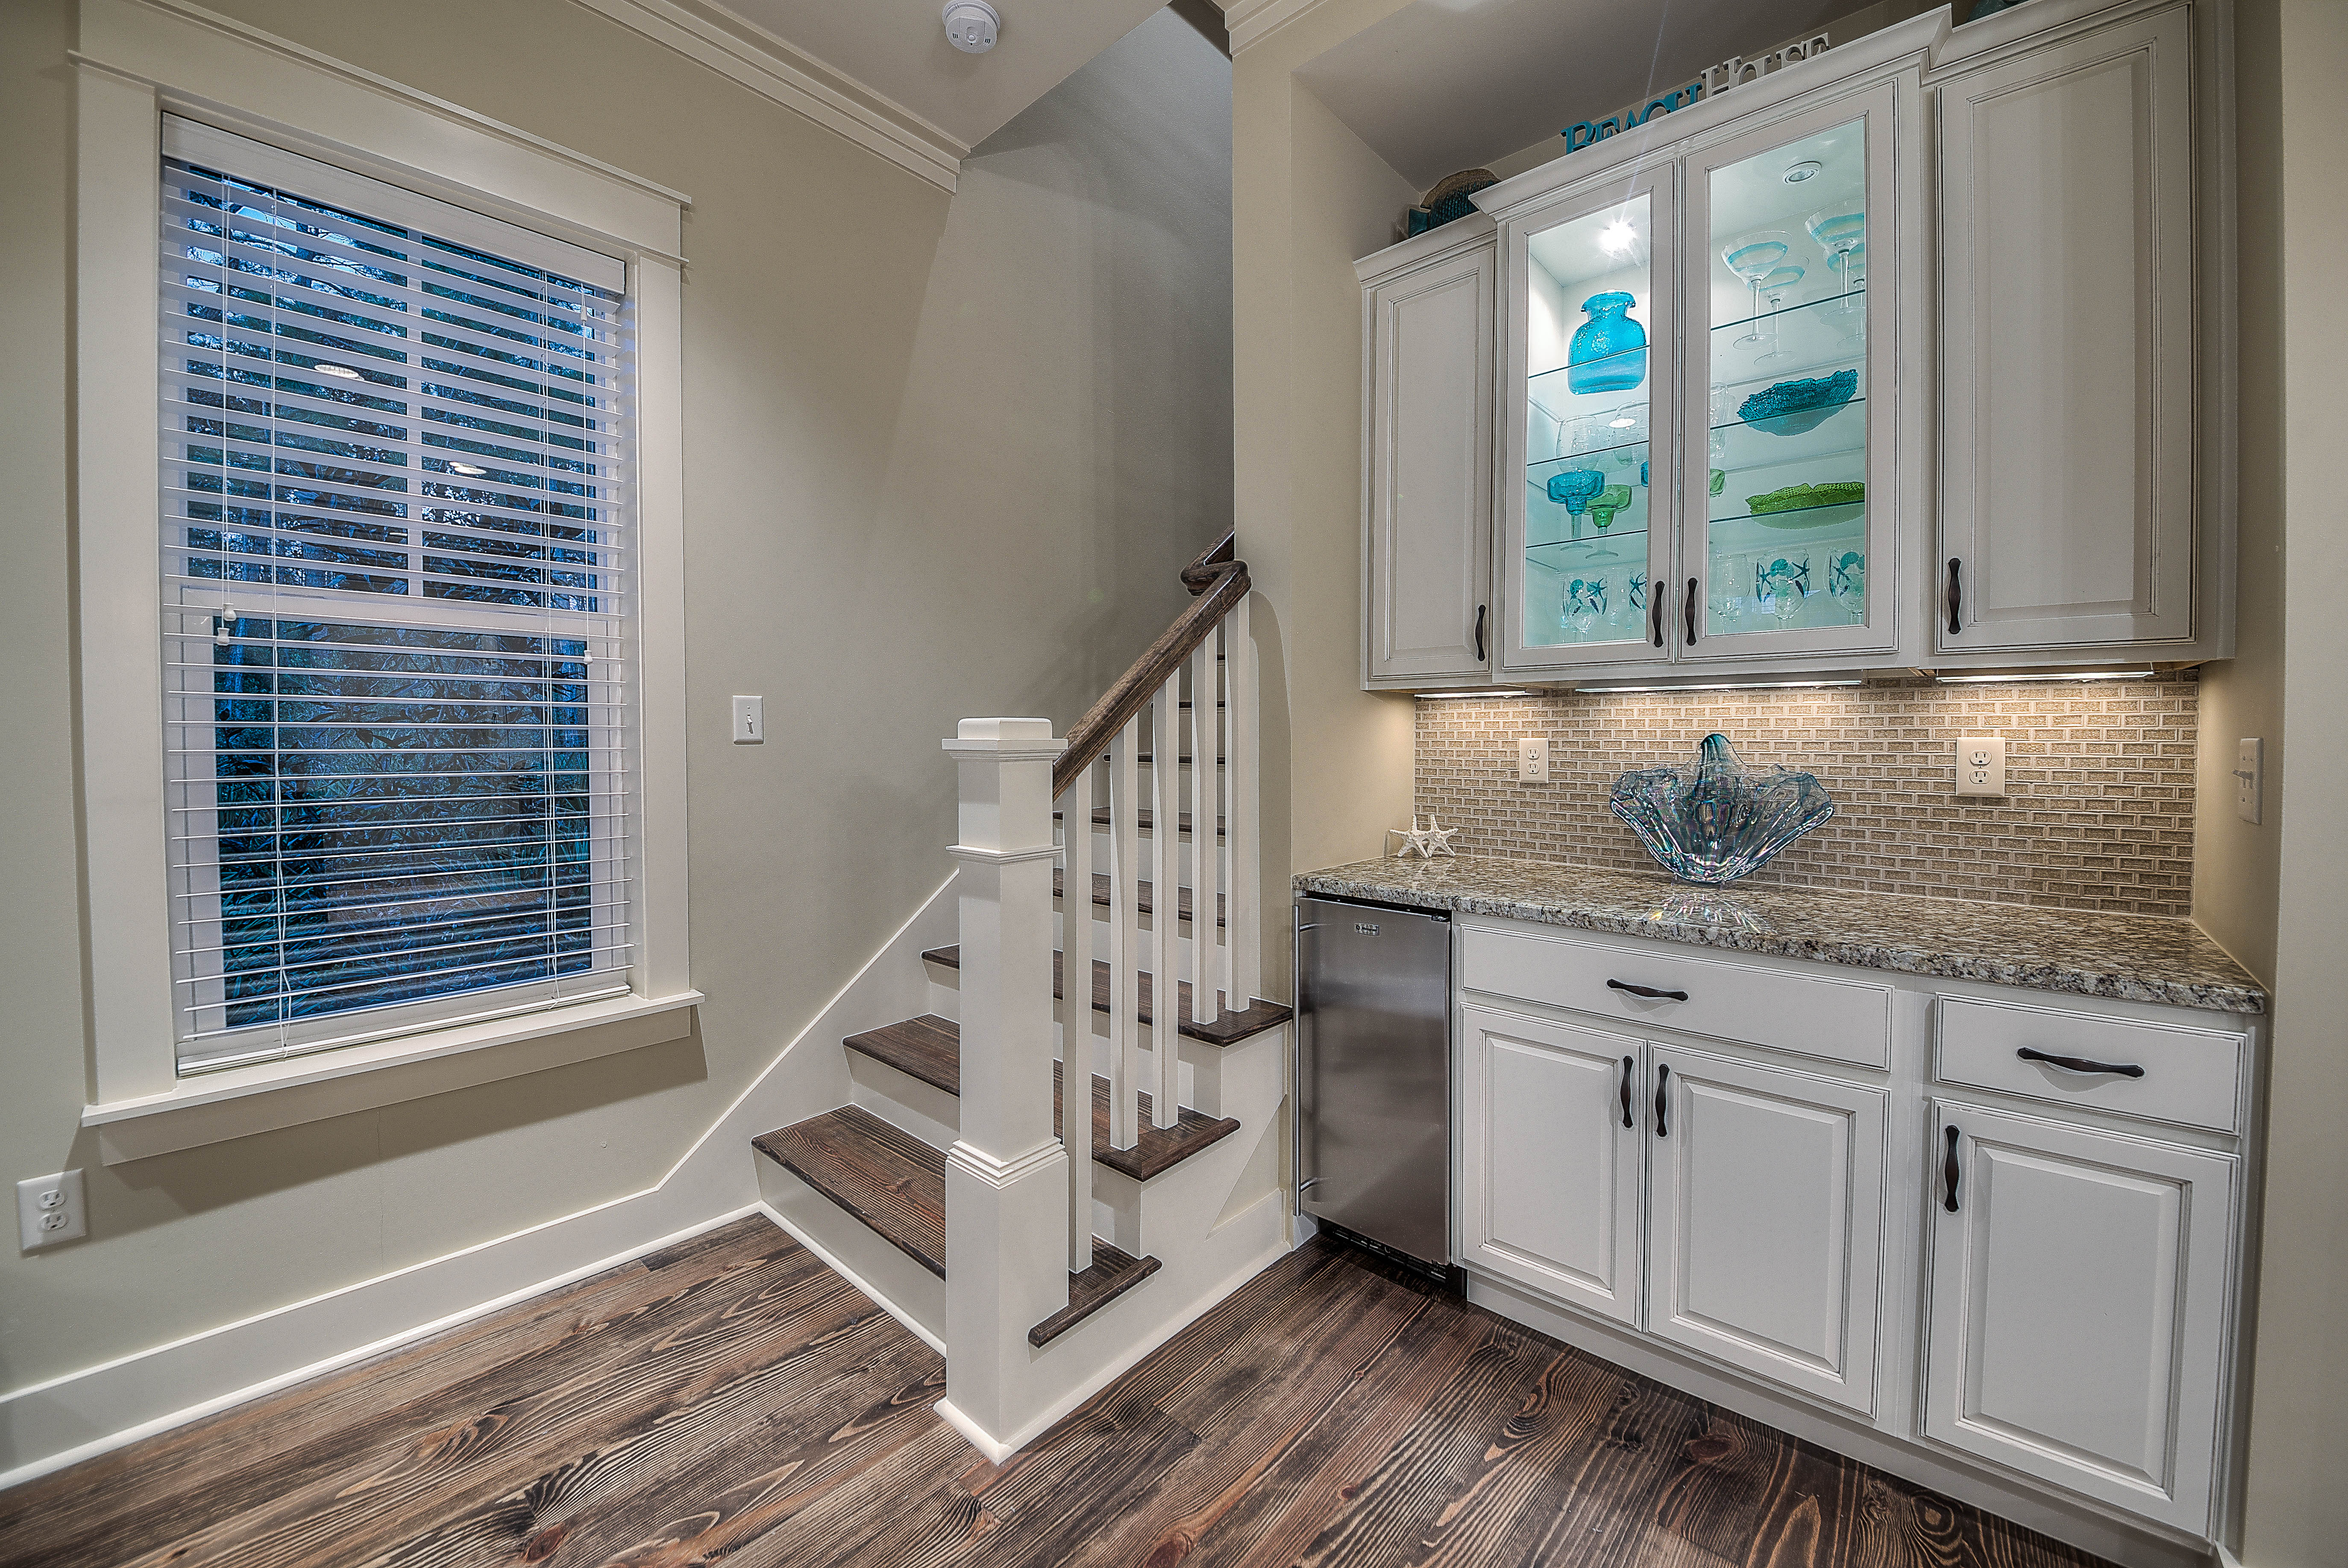 First floor wet bar with ice maker adjacent to the kitchen and living room